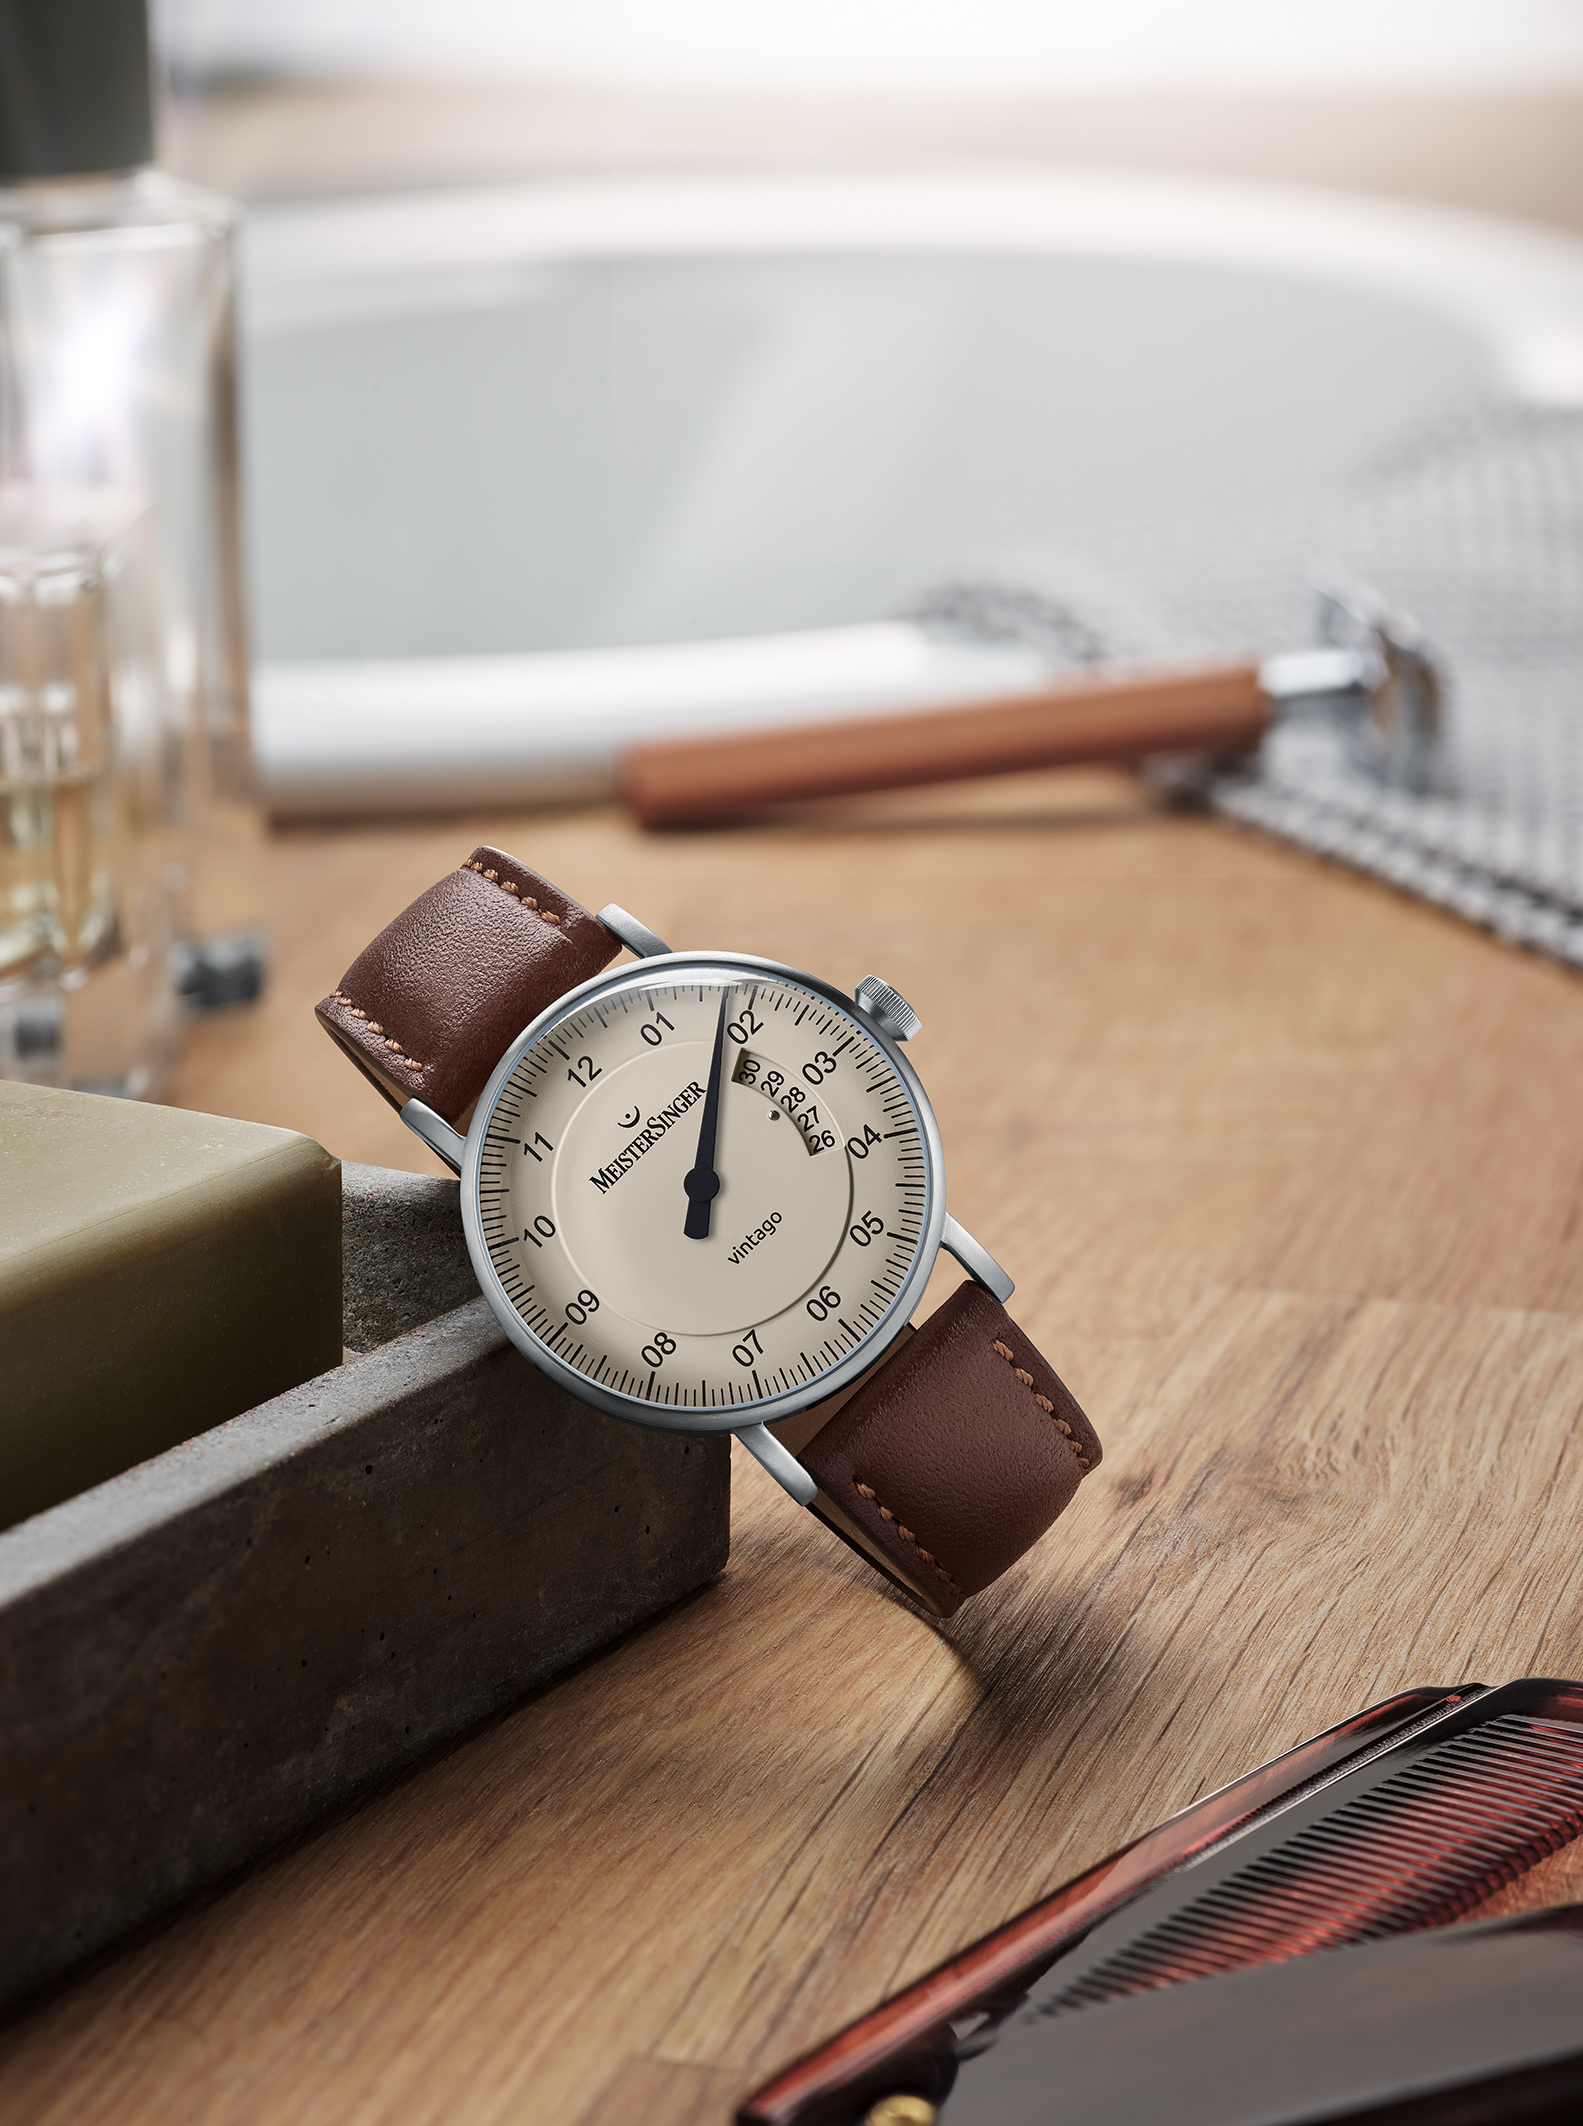 MEISTERSINGER PRESENTS THE VINTAGO: MINIMALISM IN DESIGN AND TIME DISPLAY